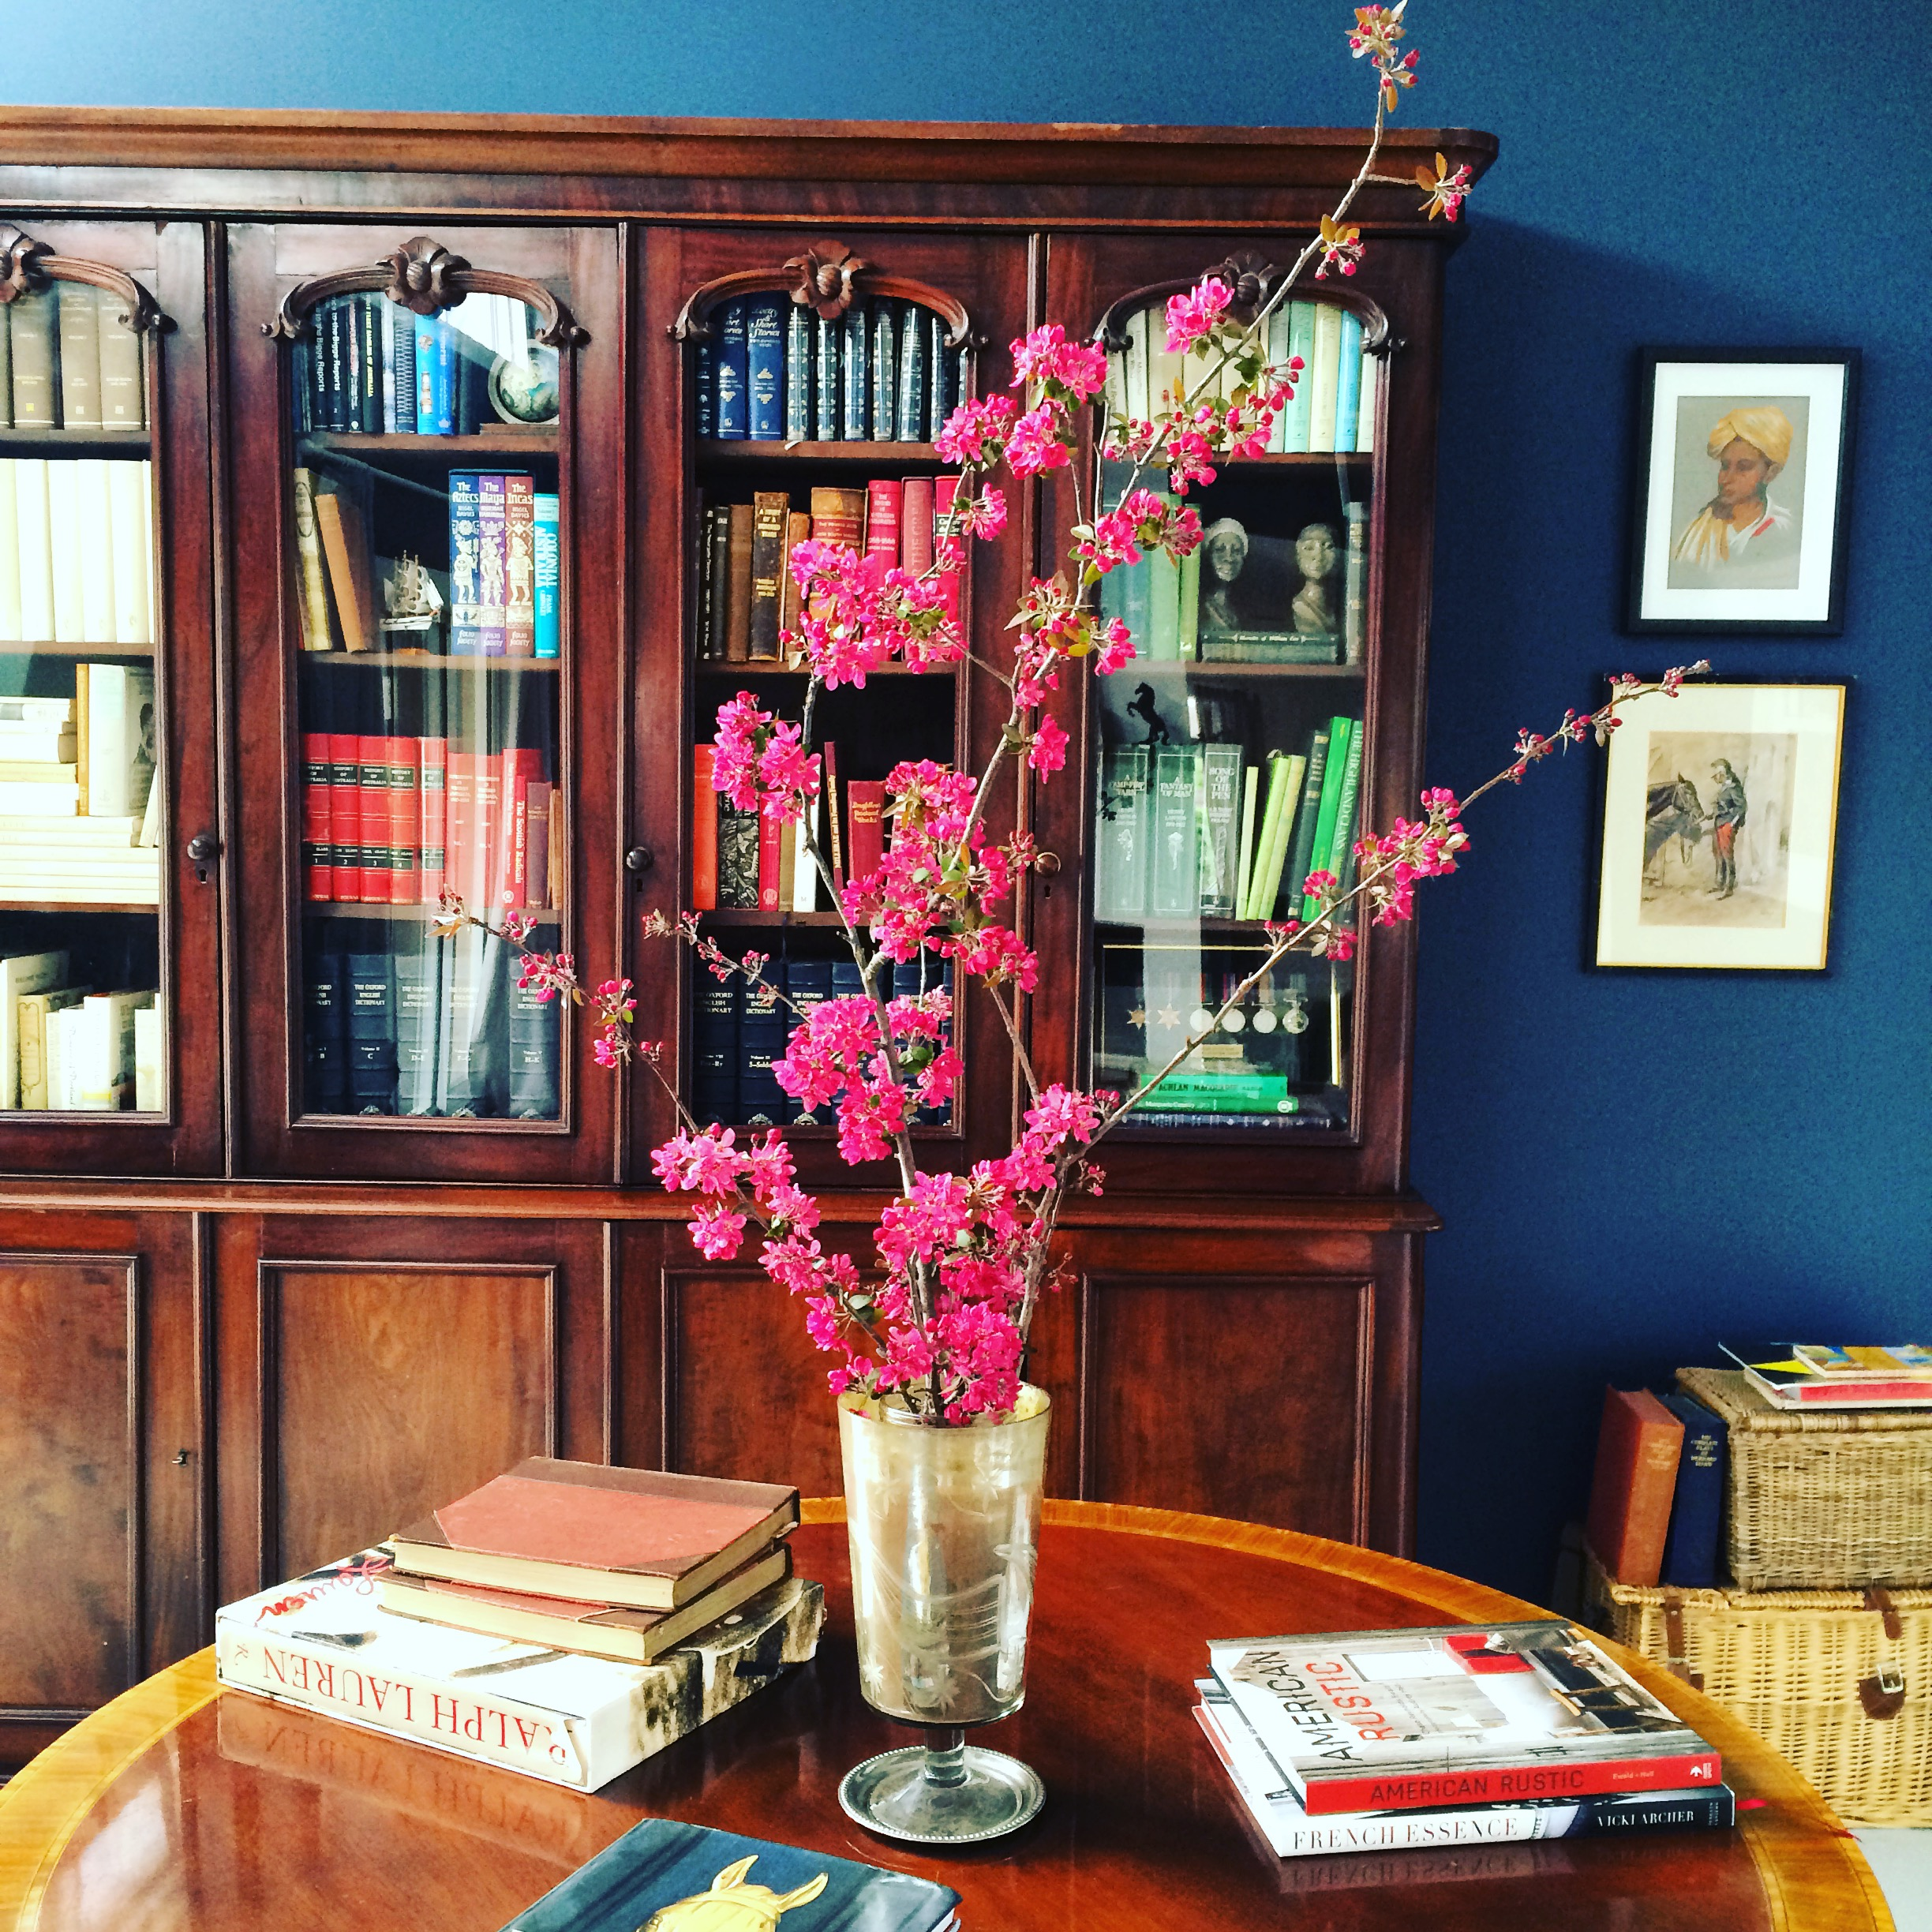 Antique Bookcase in home library